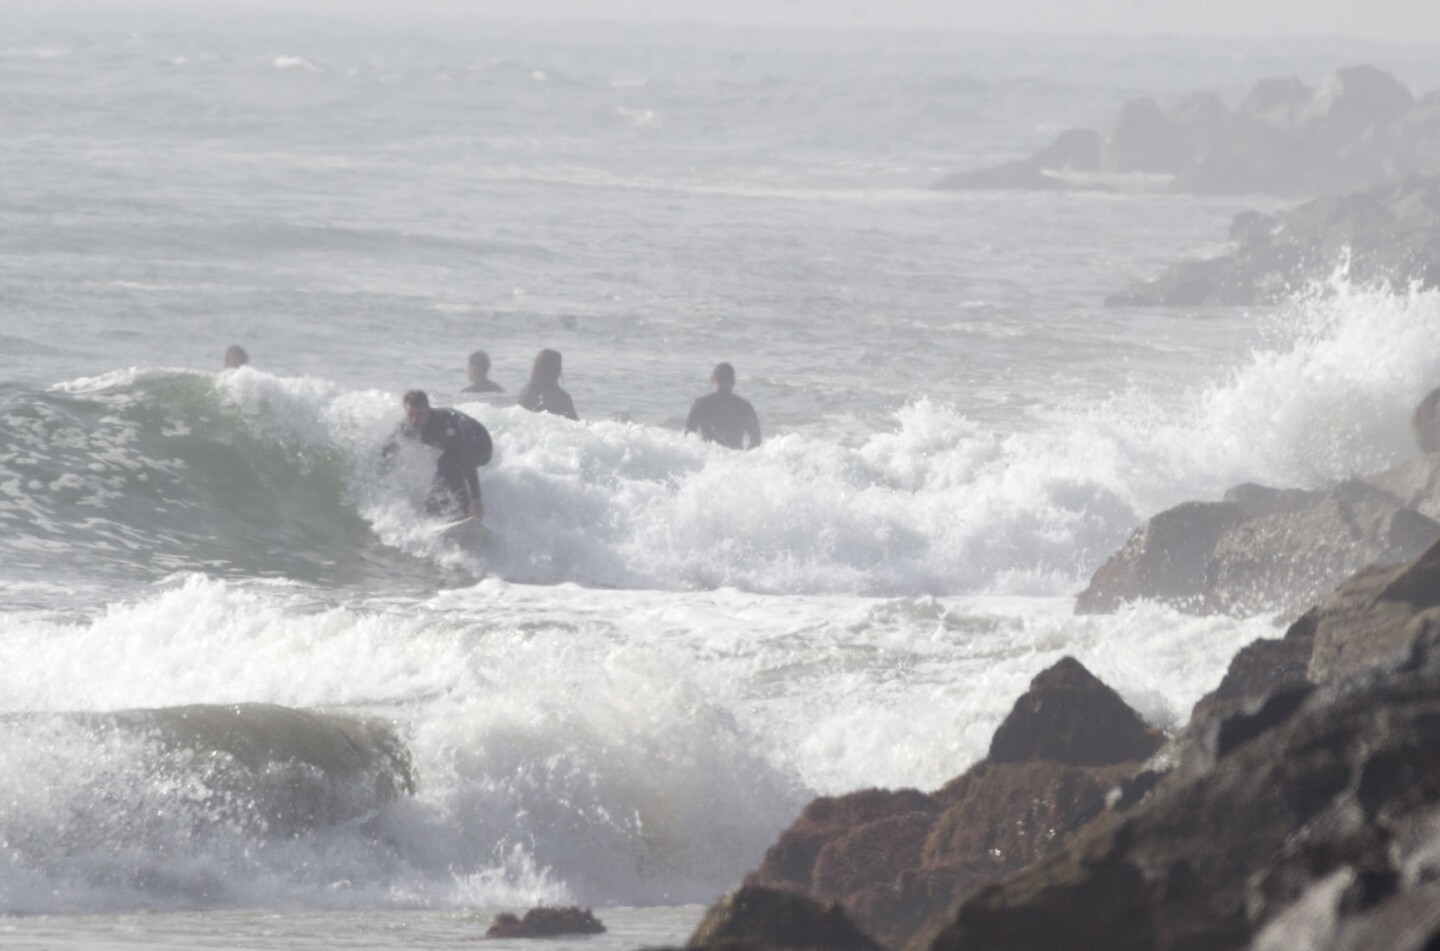 San Diego Surfers got a chance to surf the Mission Bay channel on Wednesday as the large swell was hitting the channel just right to give them tricky waves to ride.